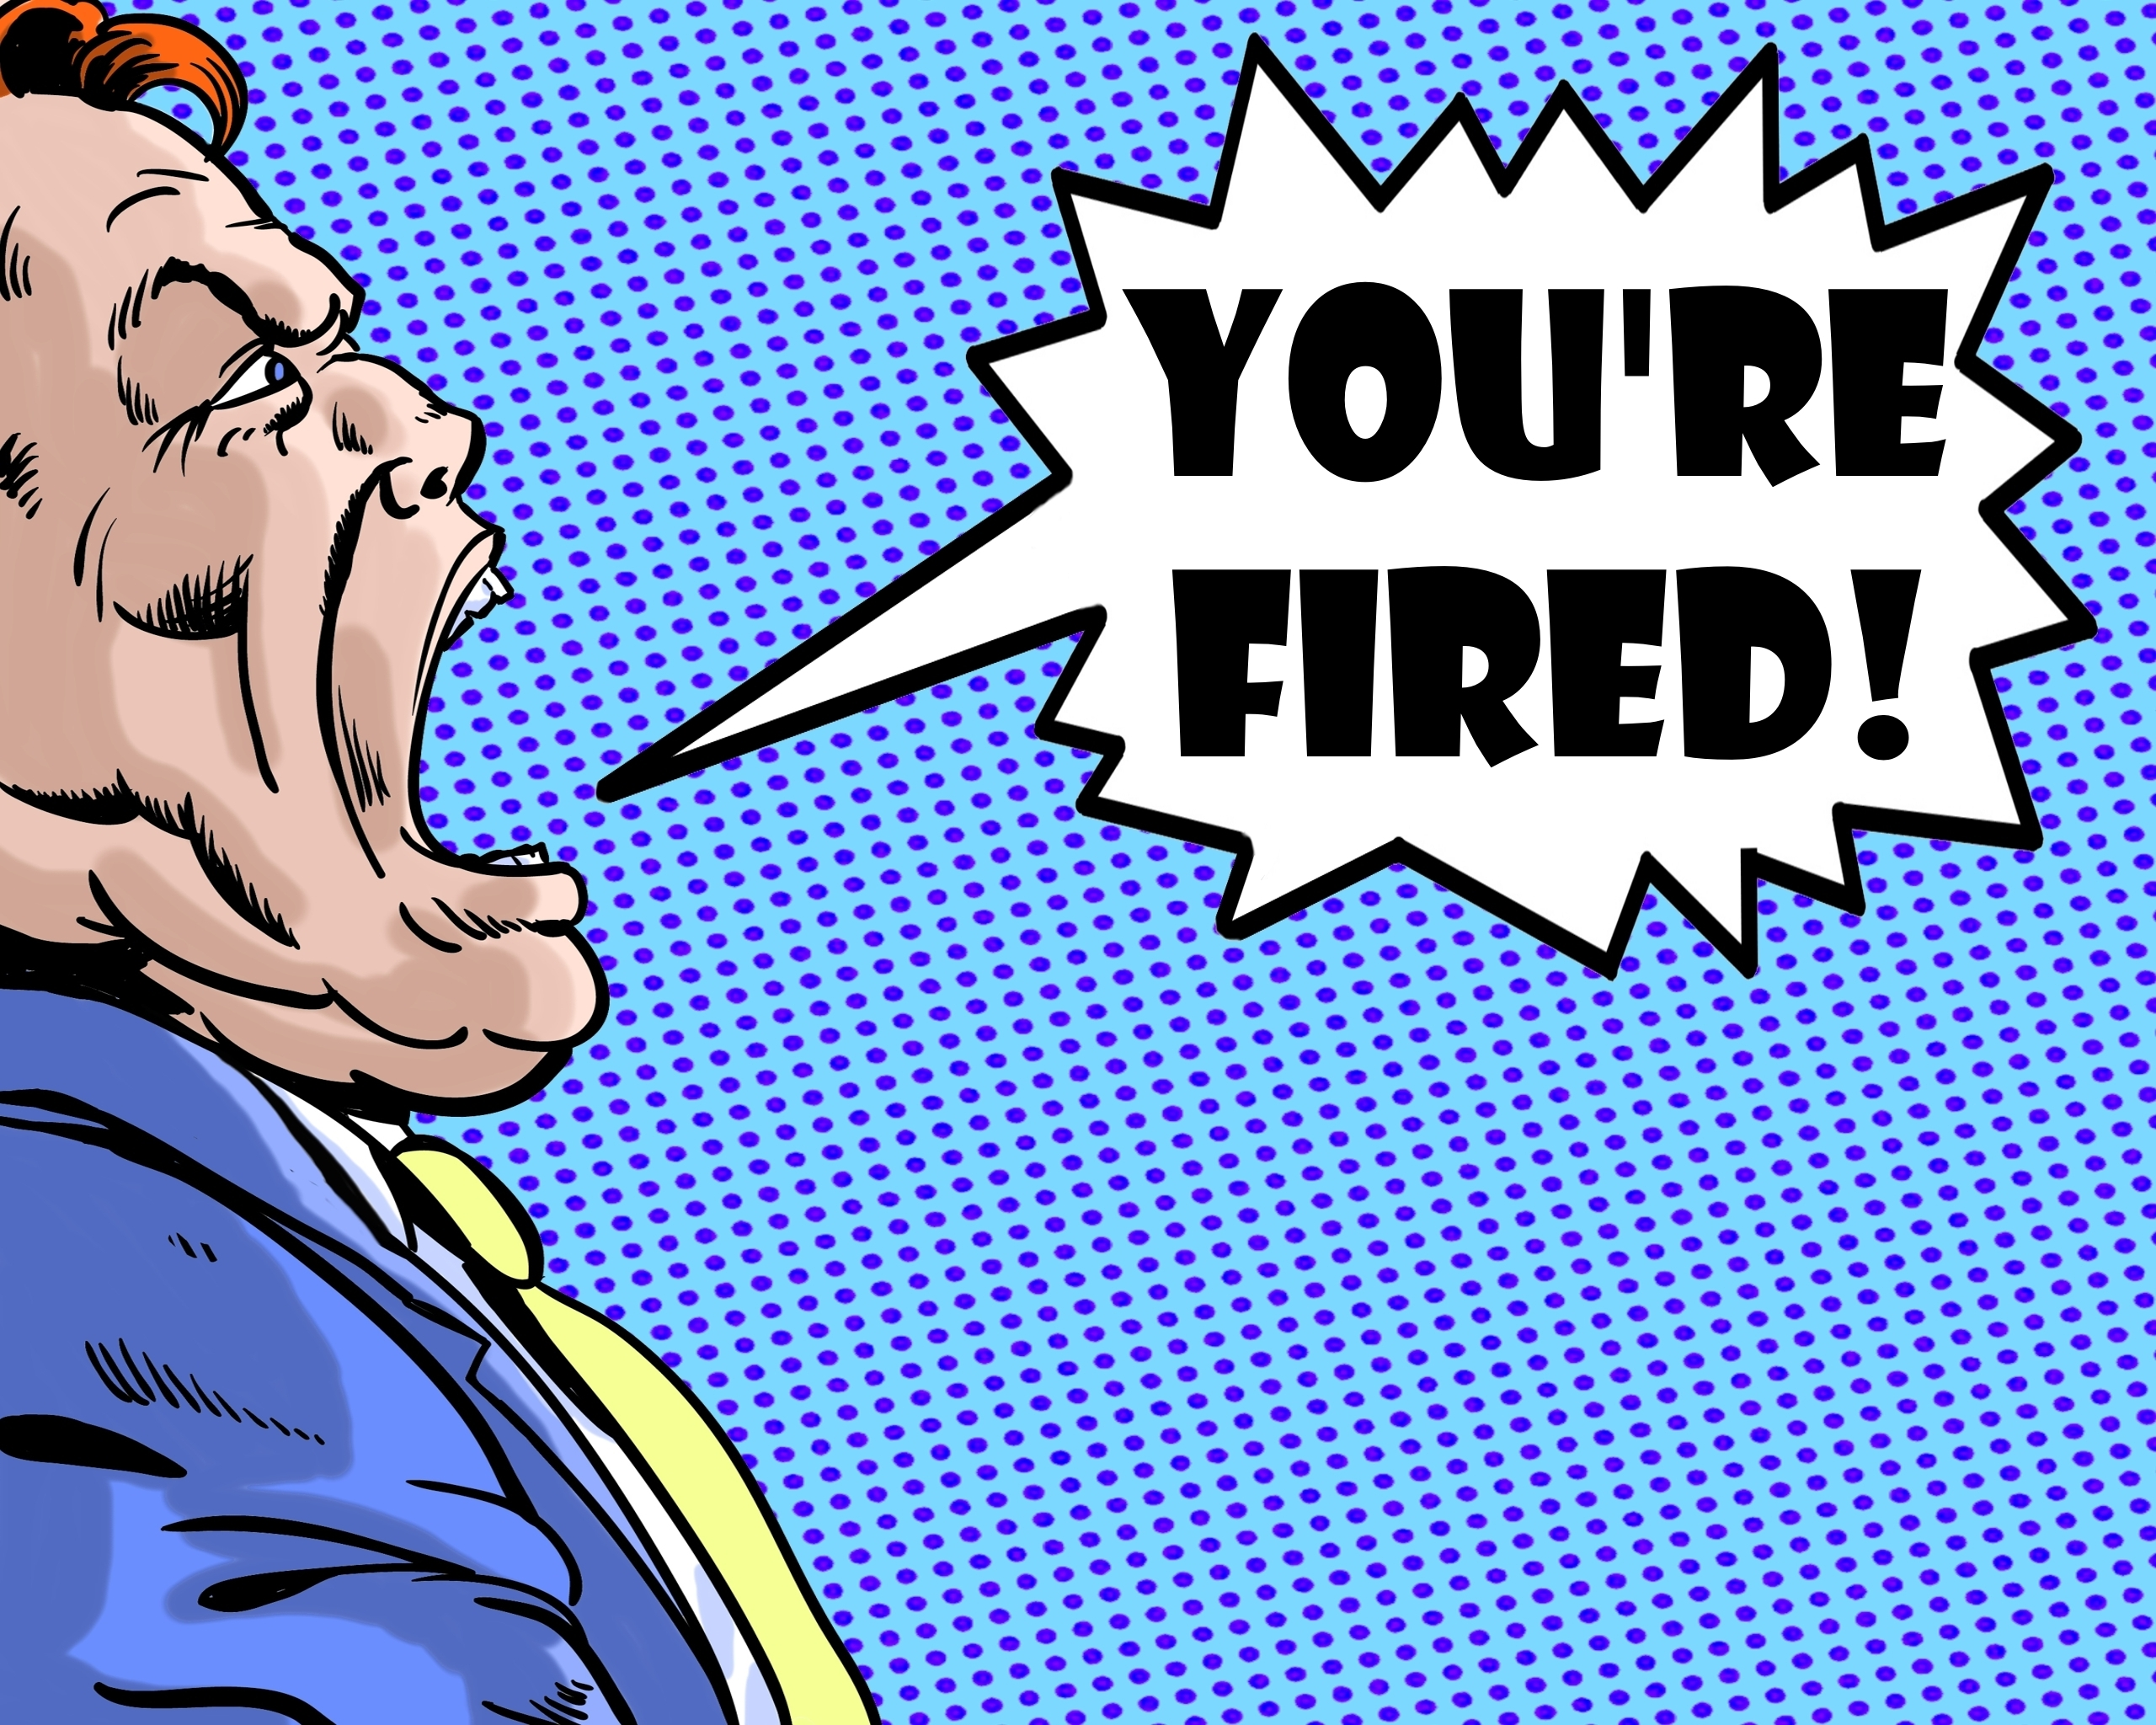 Firing: Balancing Compliance with Compassion